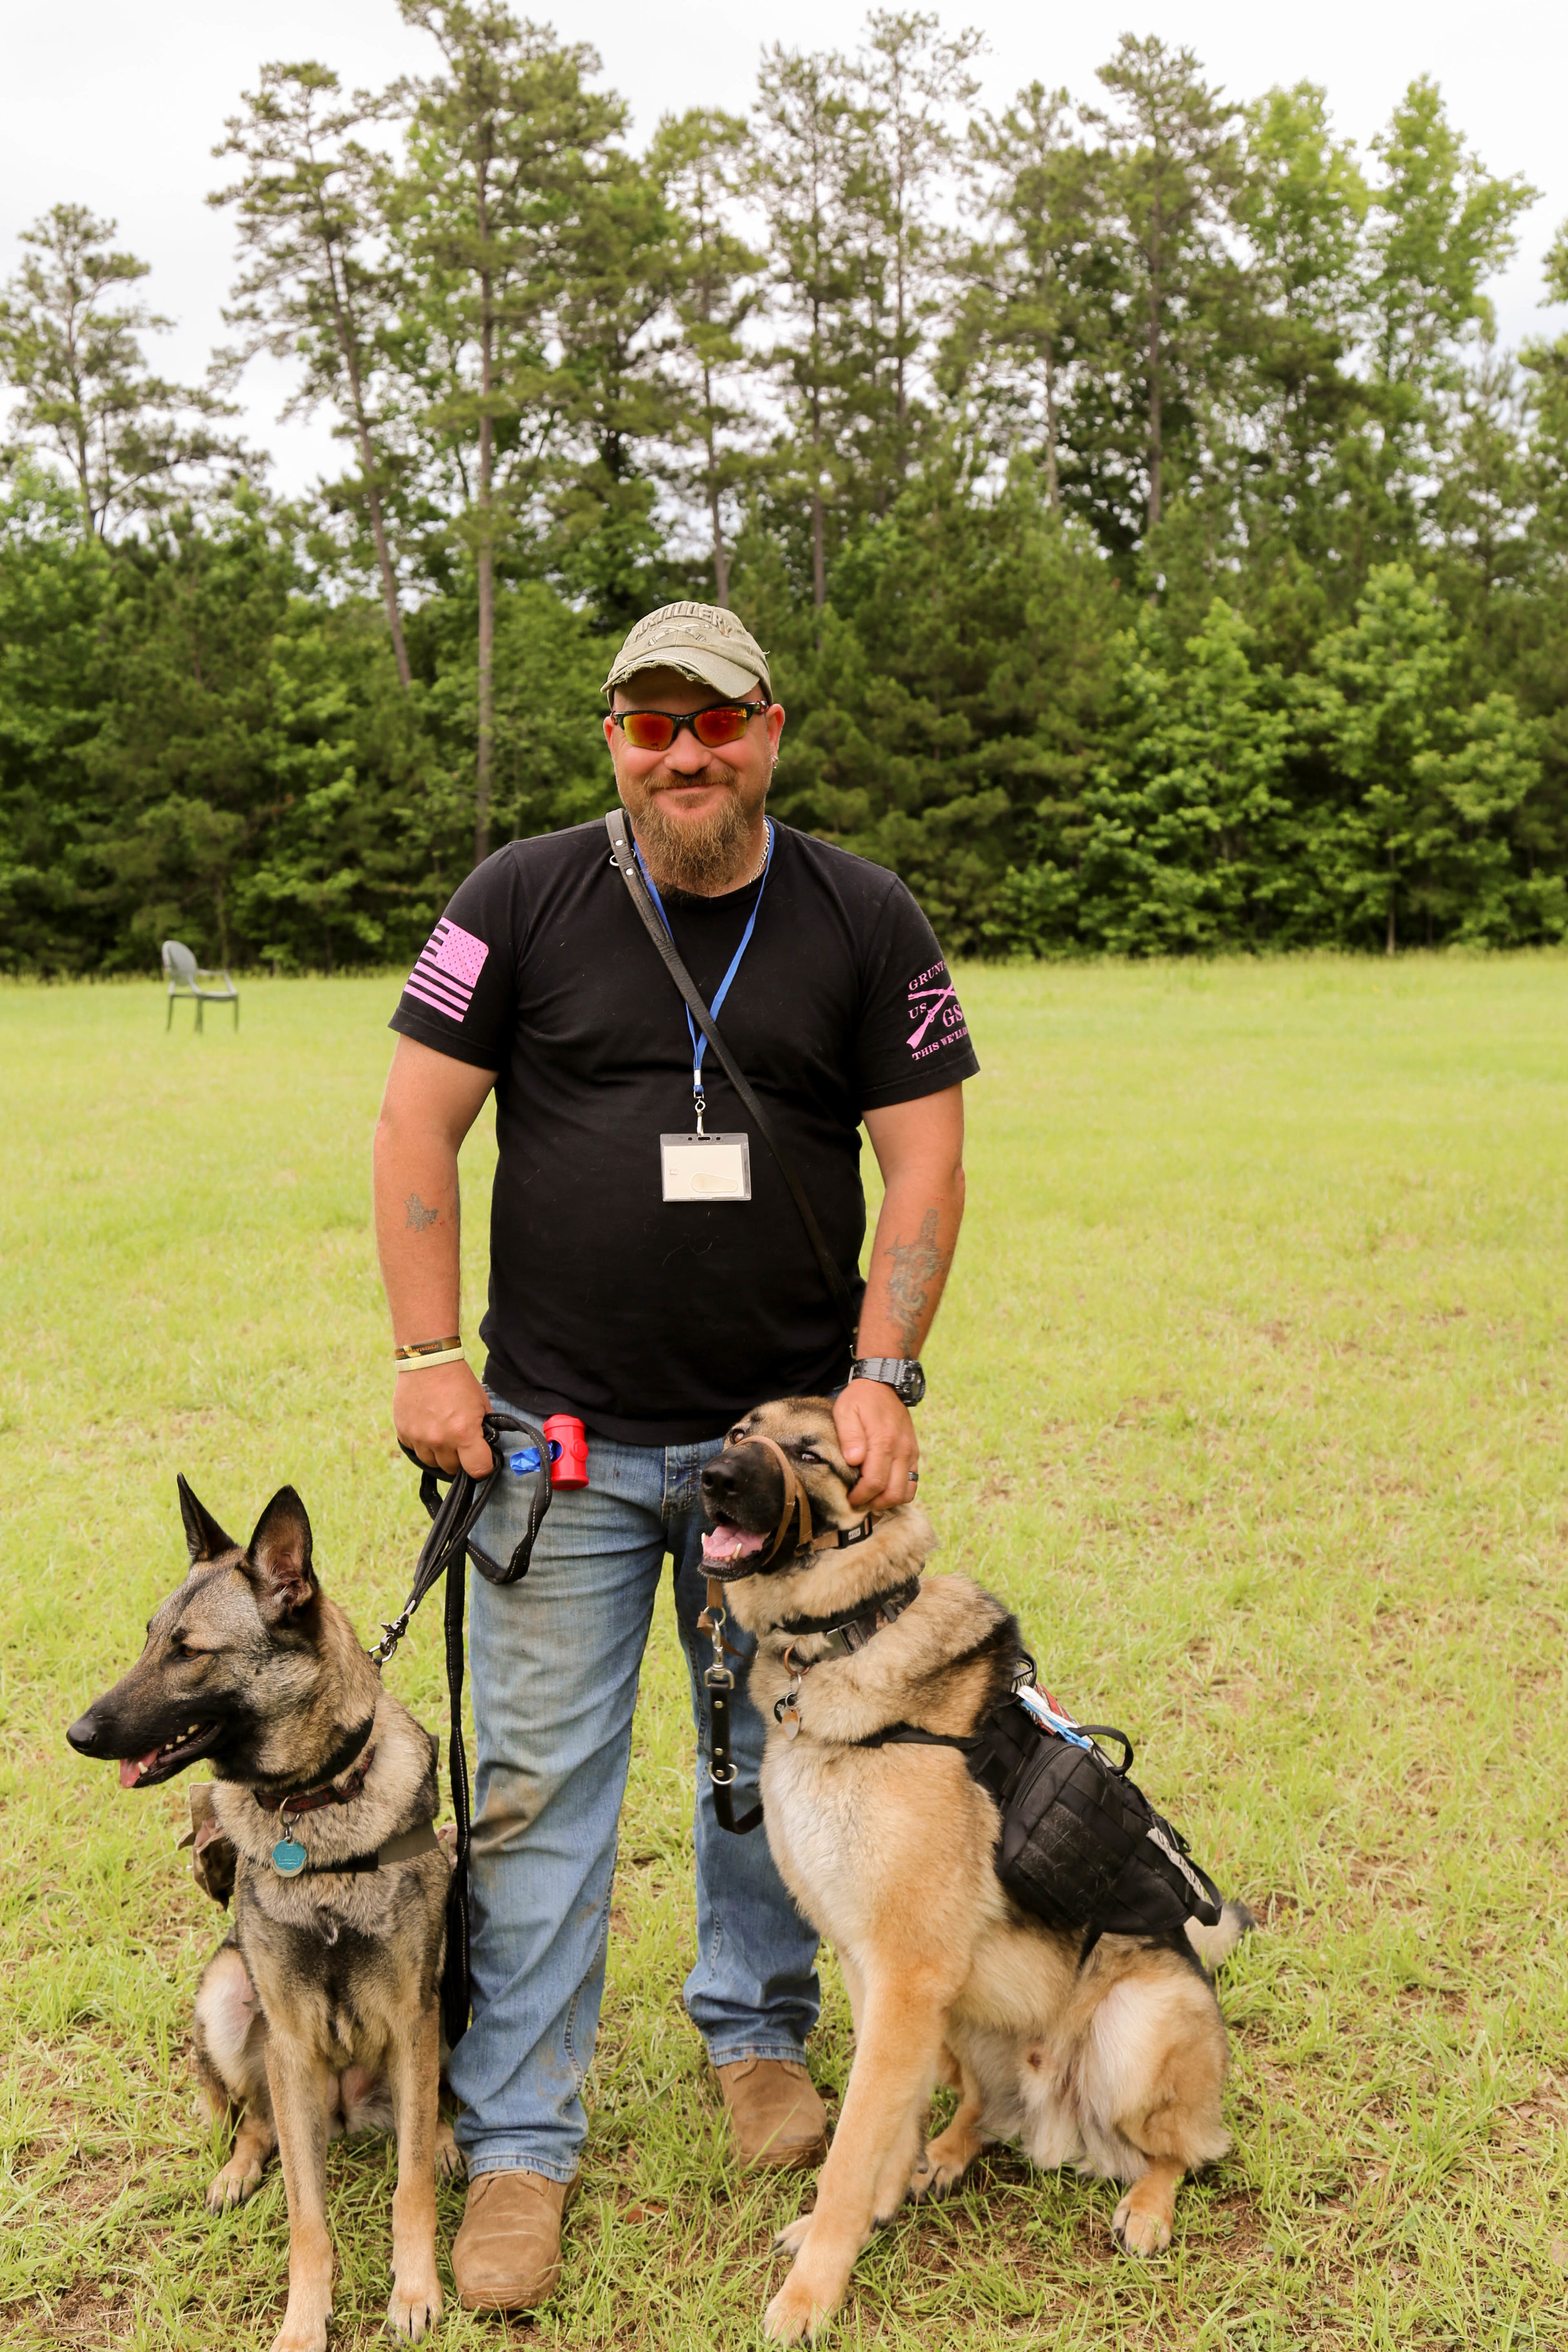 Jim with his service dogs.